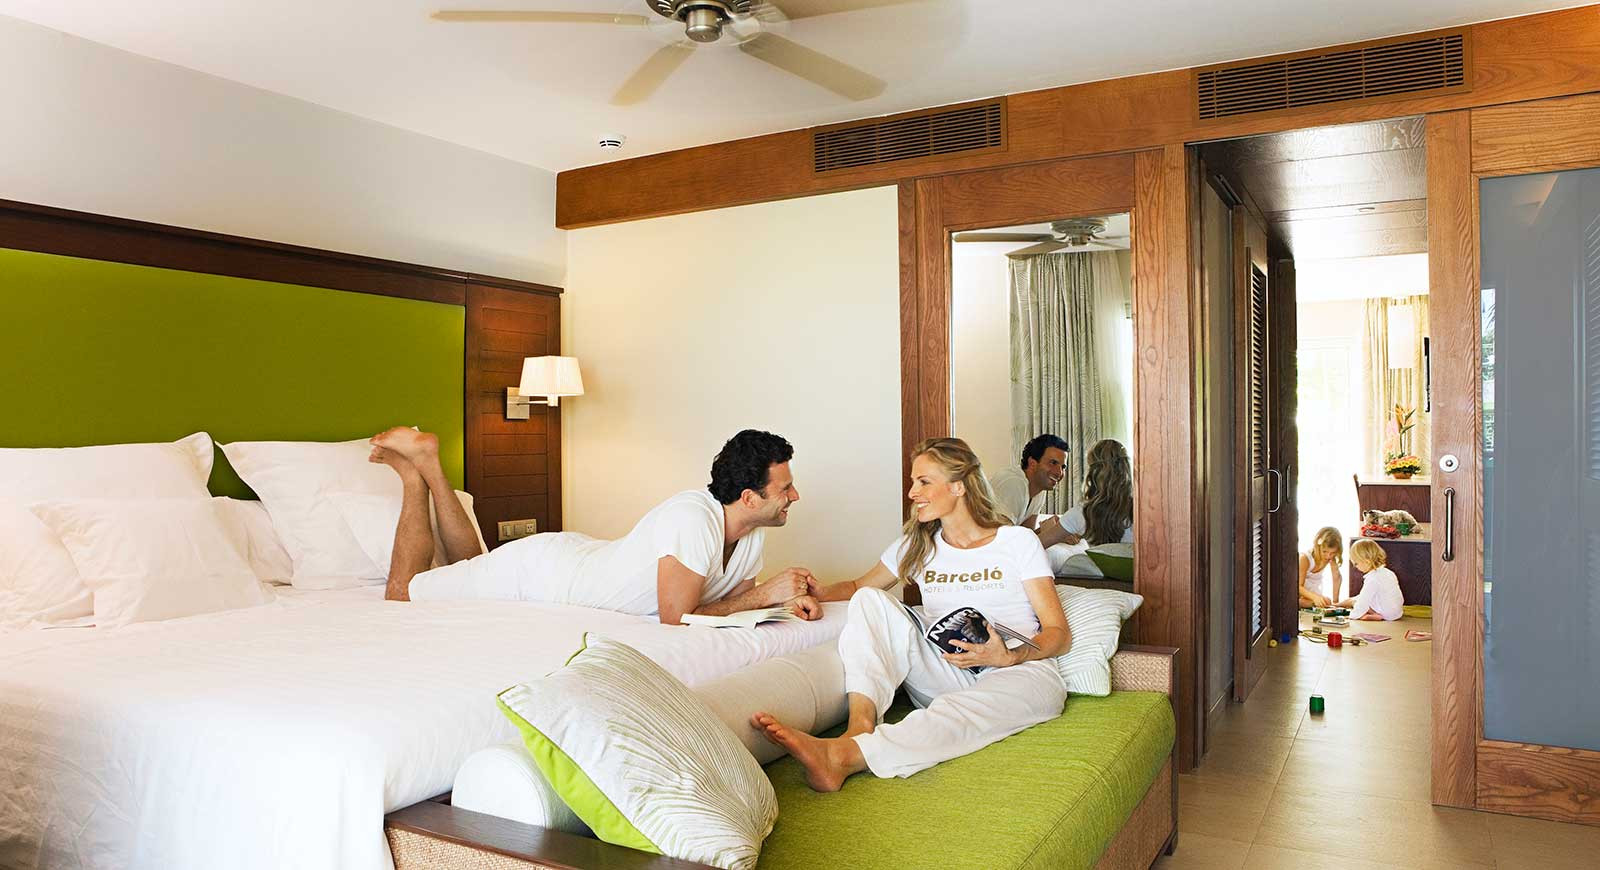 Best ideas about Barcelo Bavaro Palace Family Room . Save or Pin Hotel Family Club at Barceló Bávaro Palace Now.